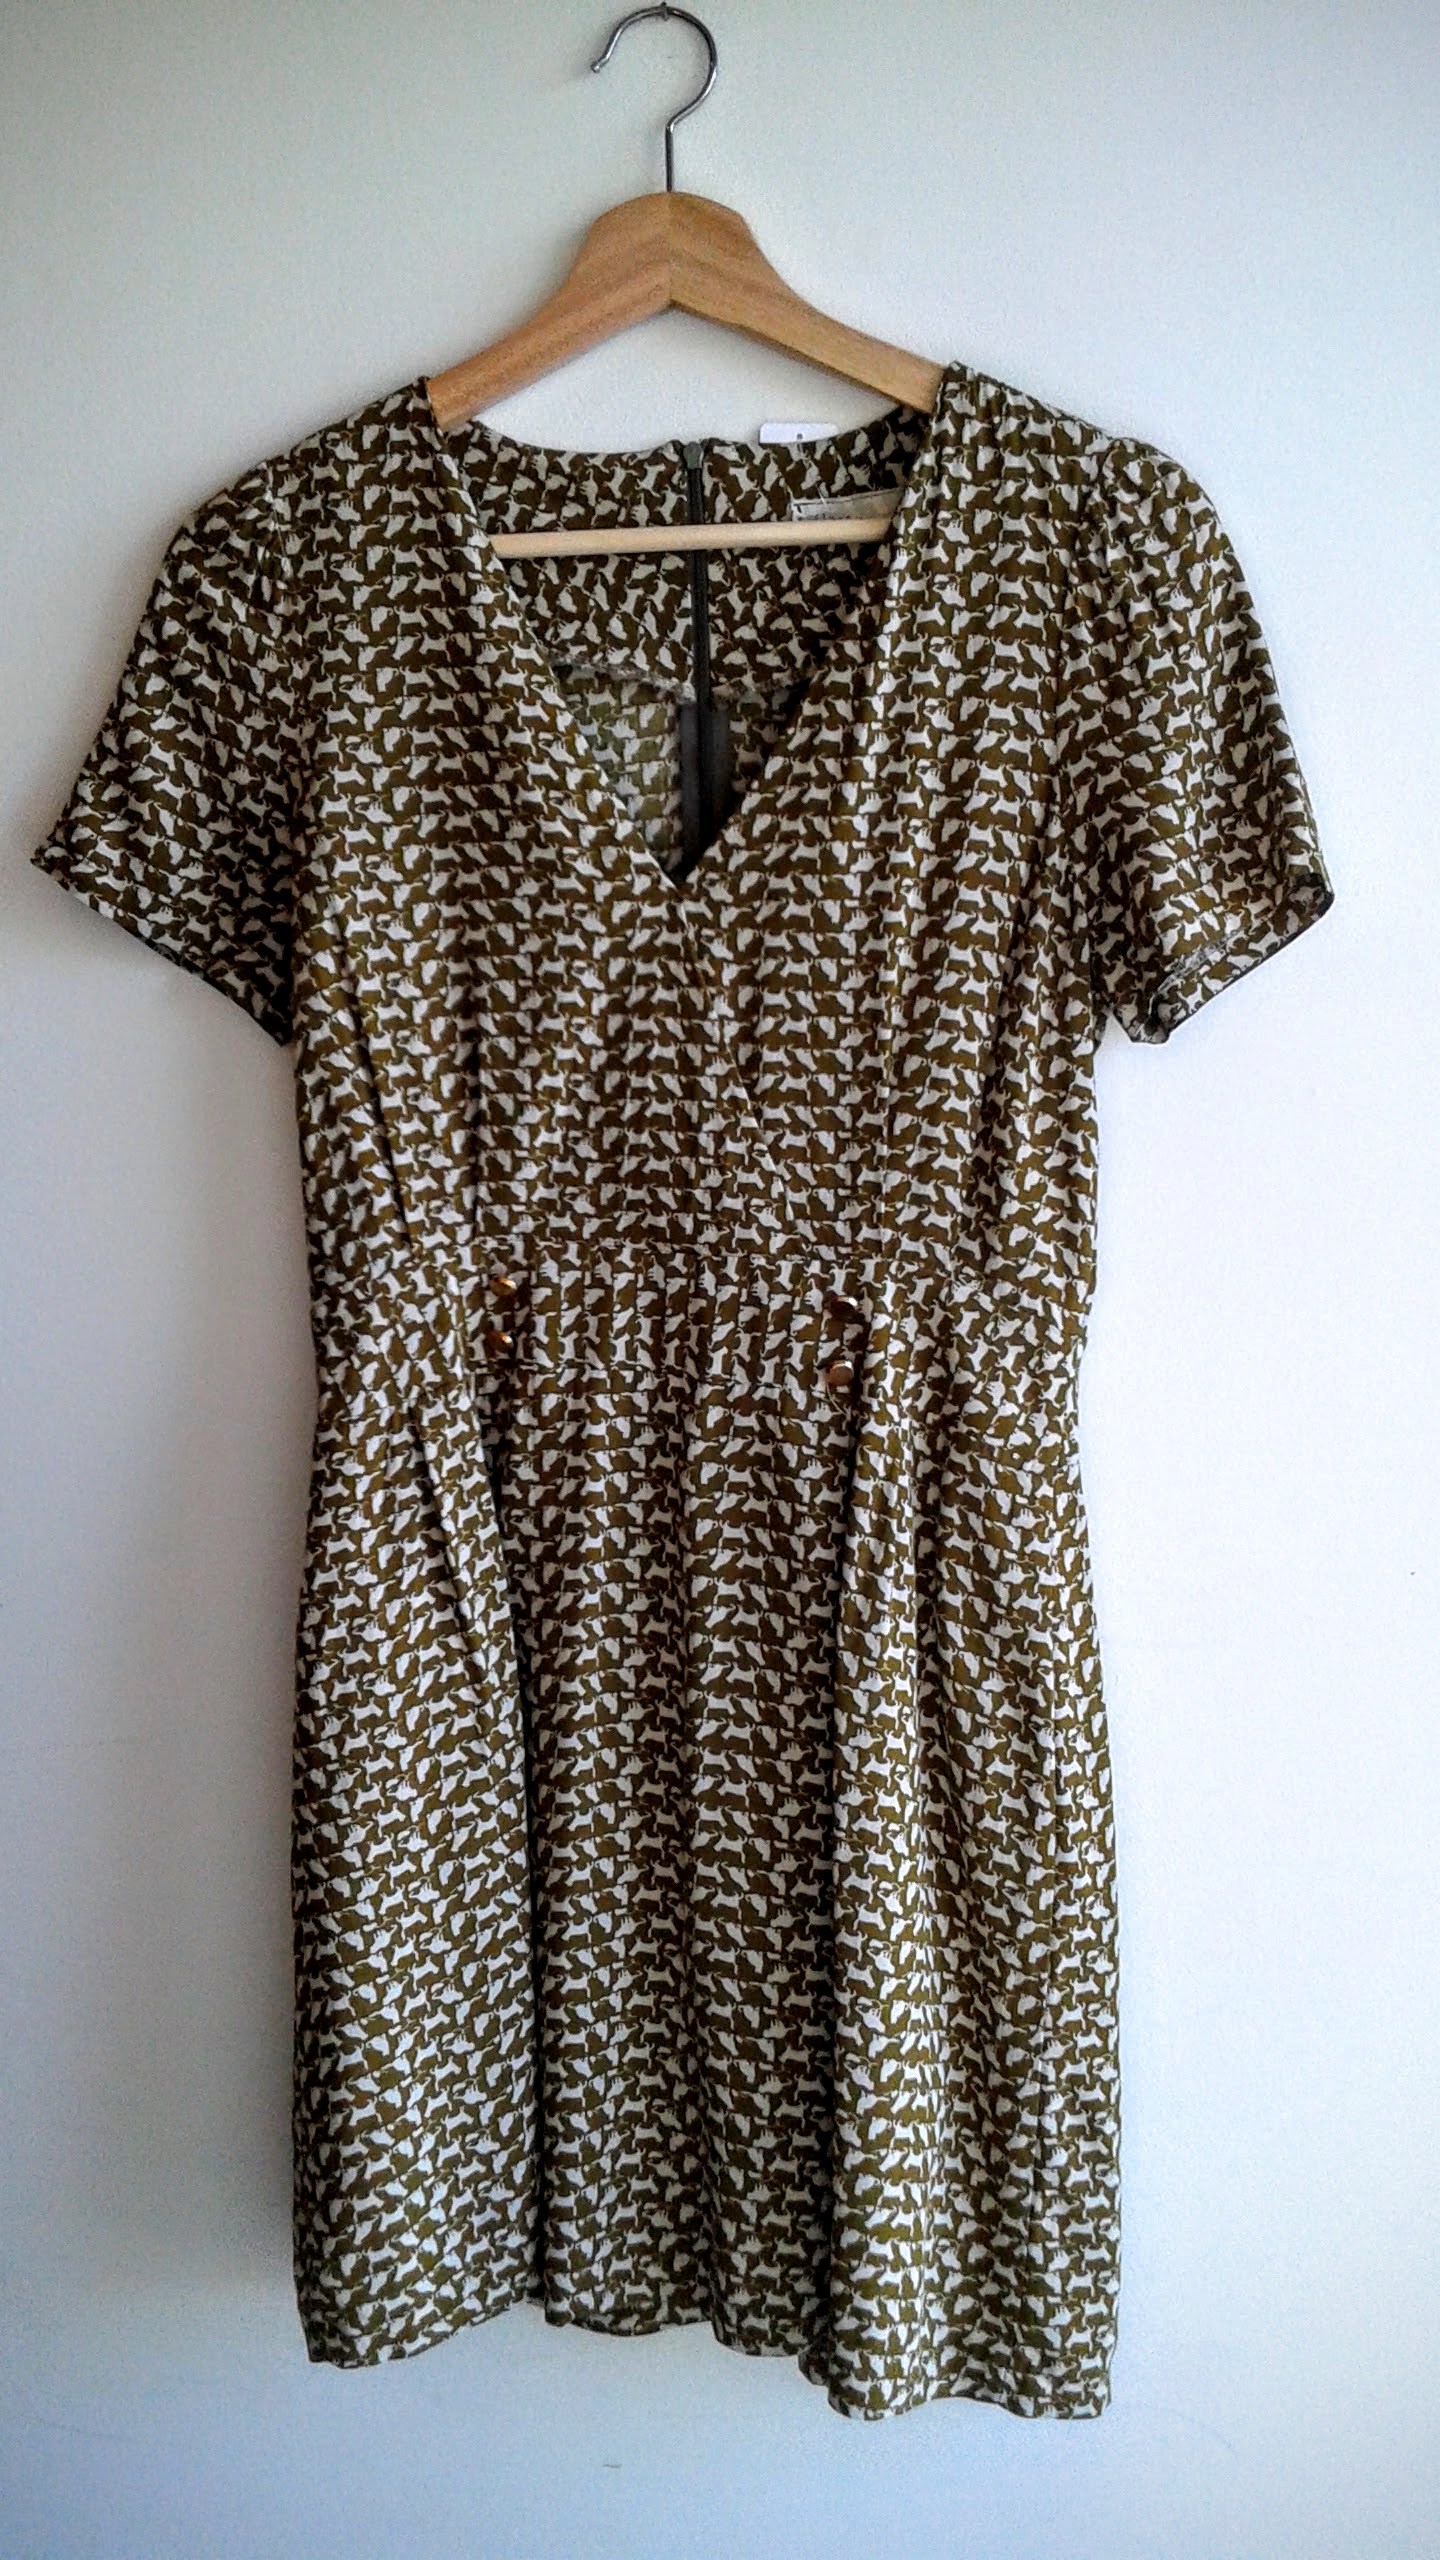 8th Floor dress; Size S, $36